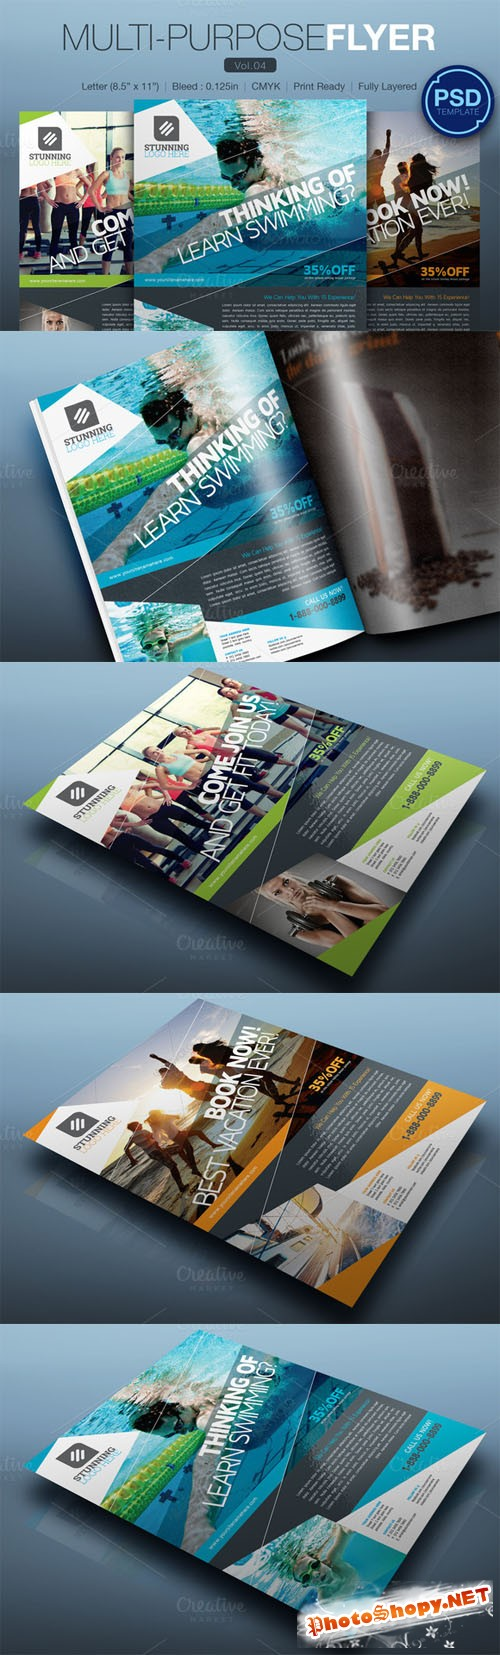 Multipurpose Flyer Vol.04 - Creativemarket 145632